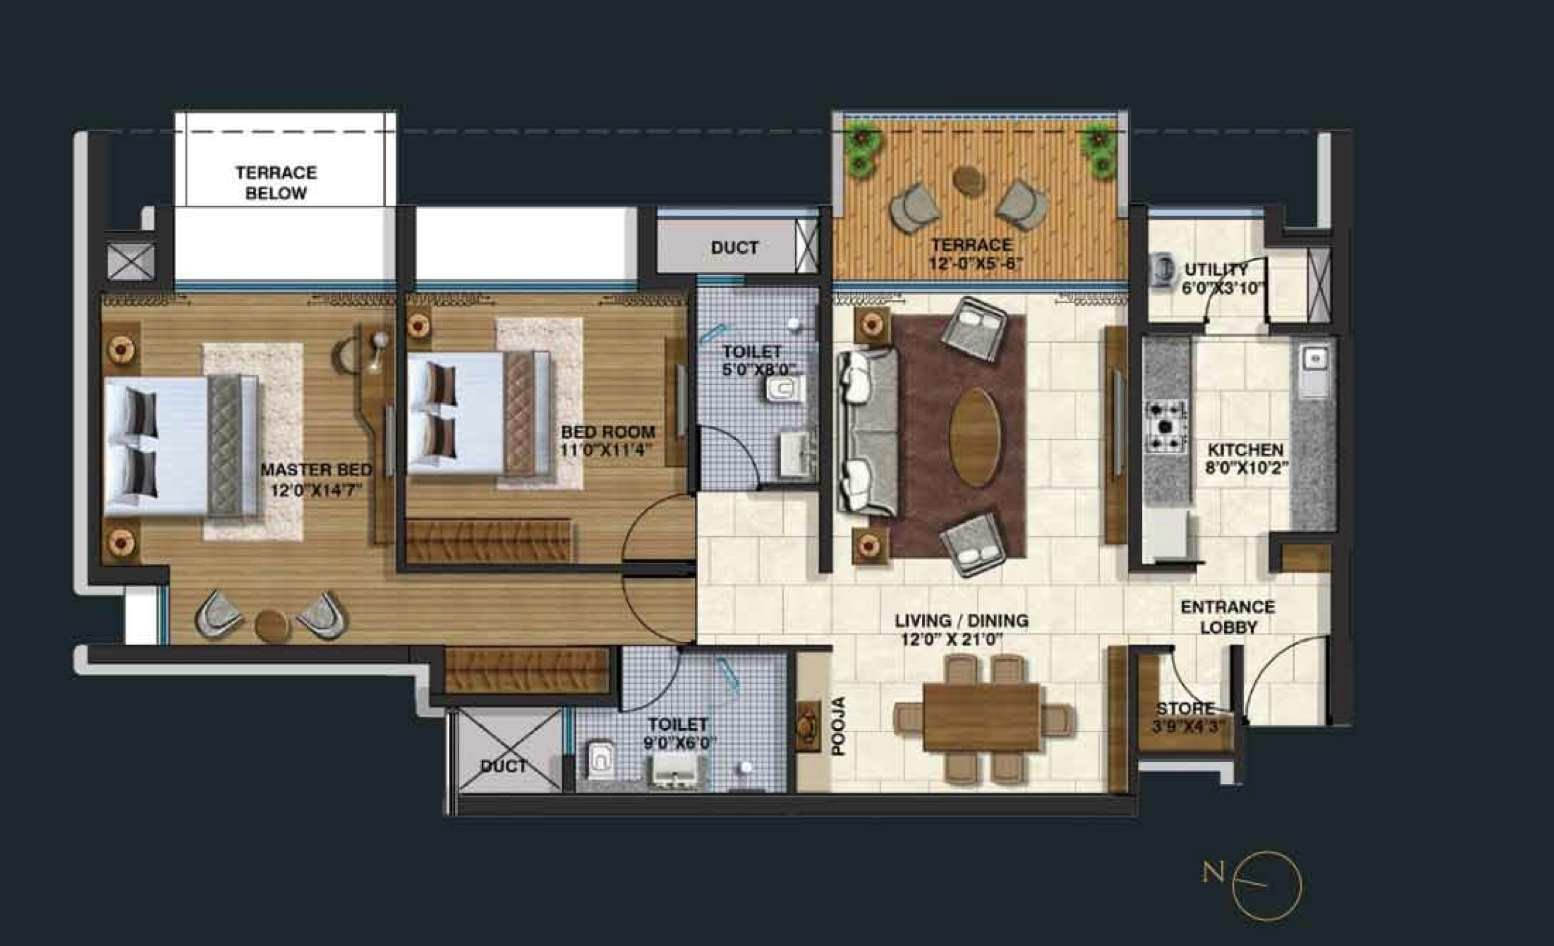 Lodha Belmondo 2 BHK Small Unit Plan